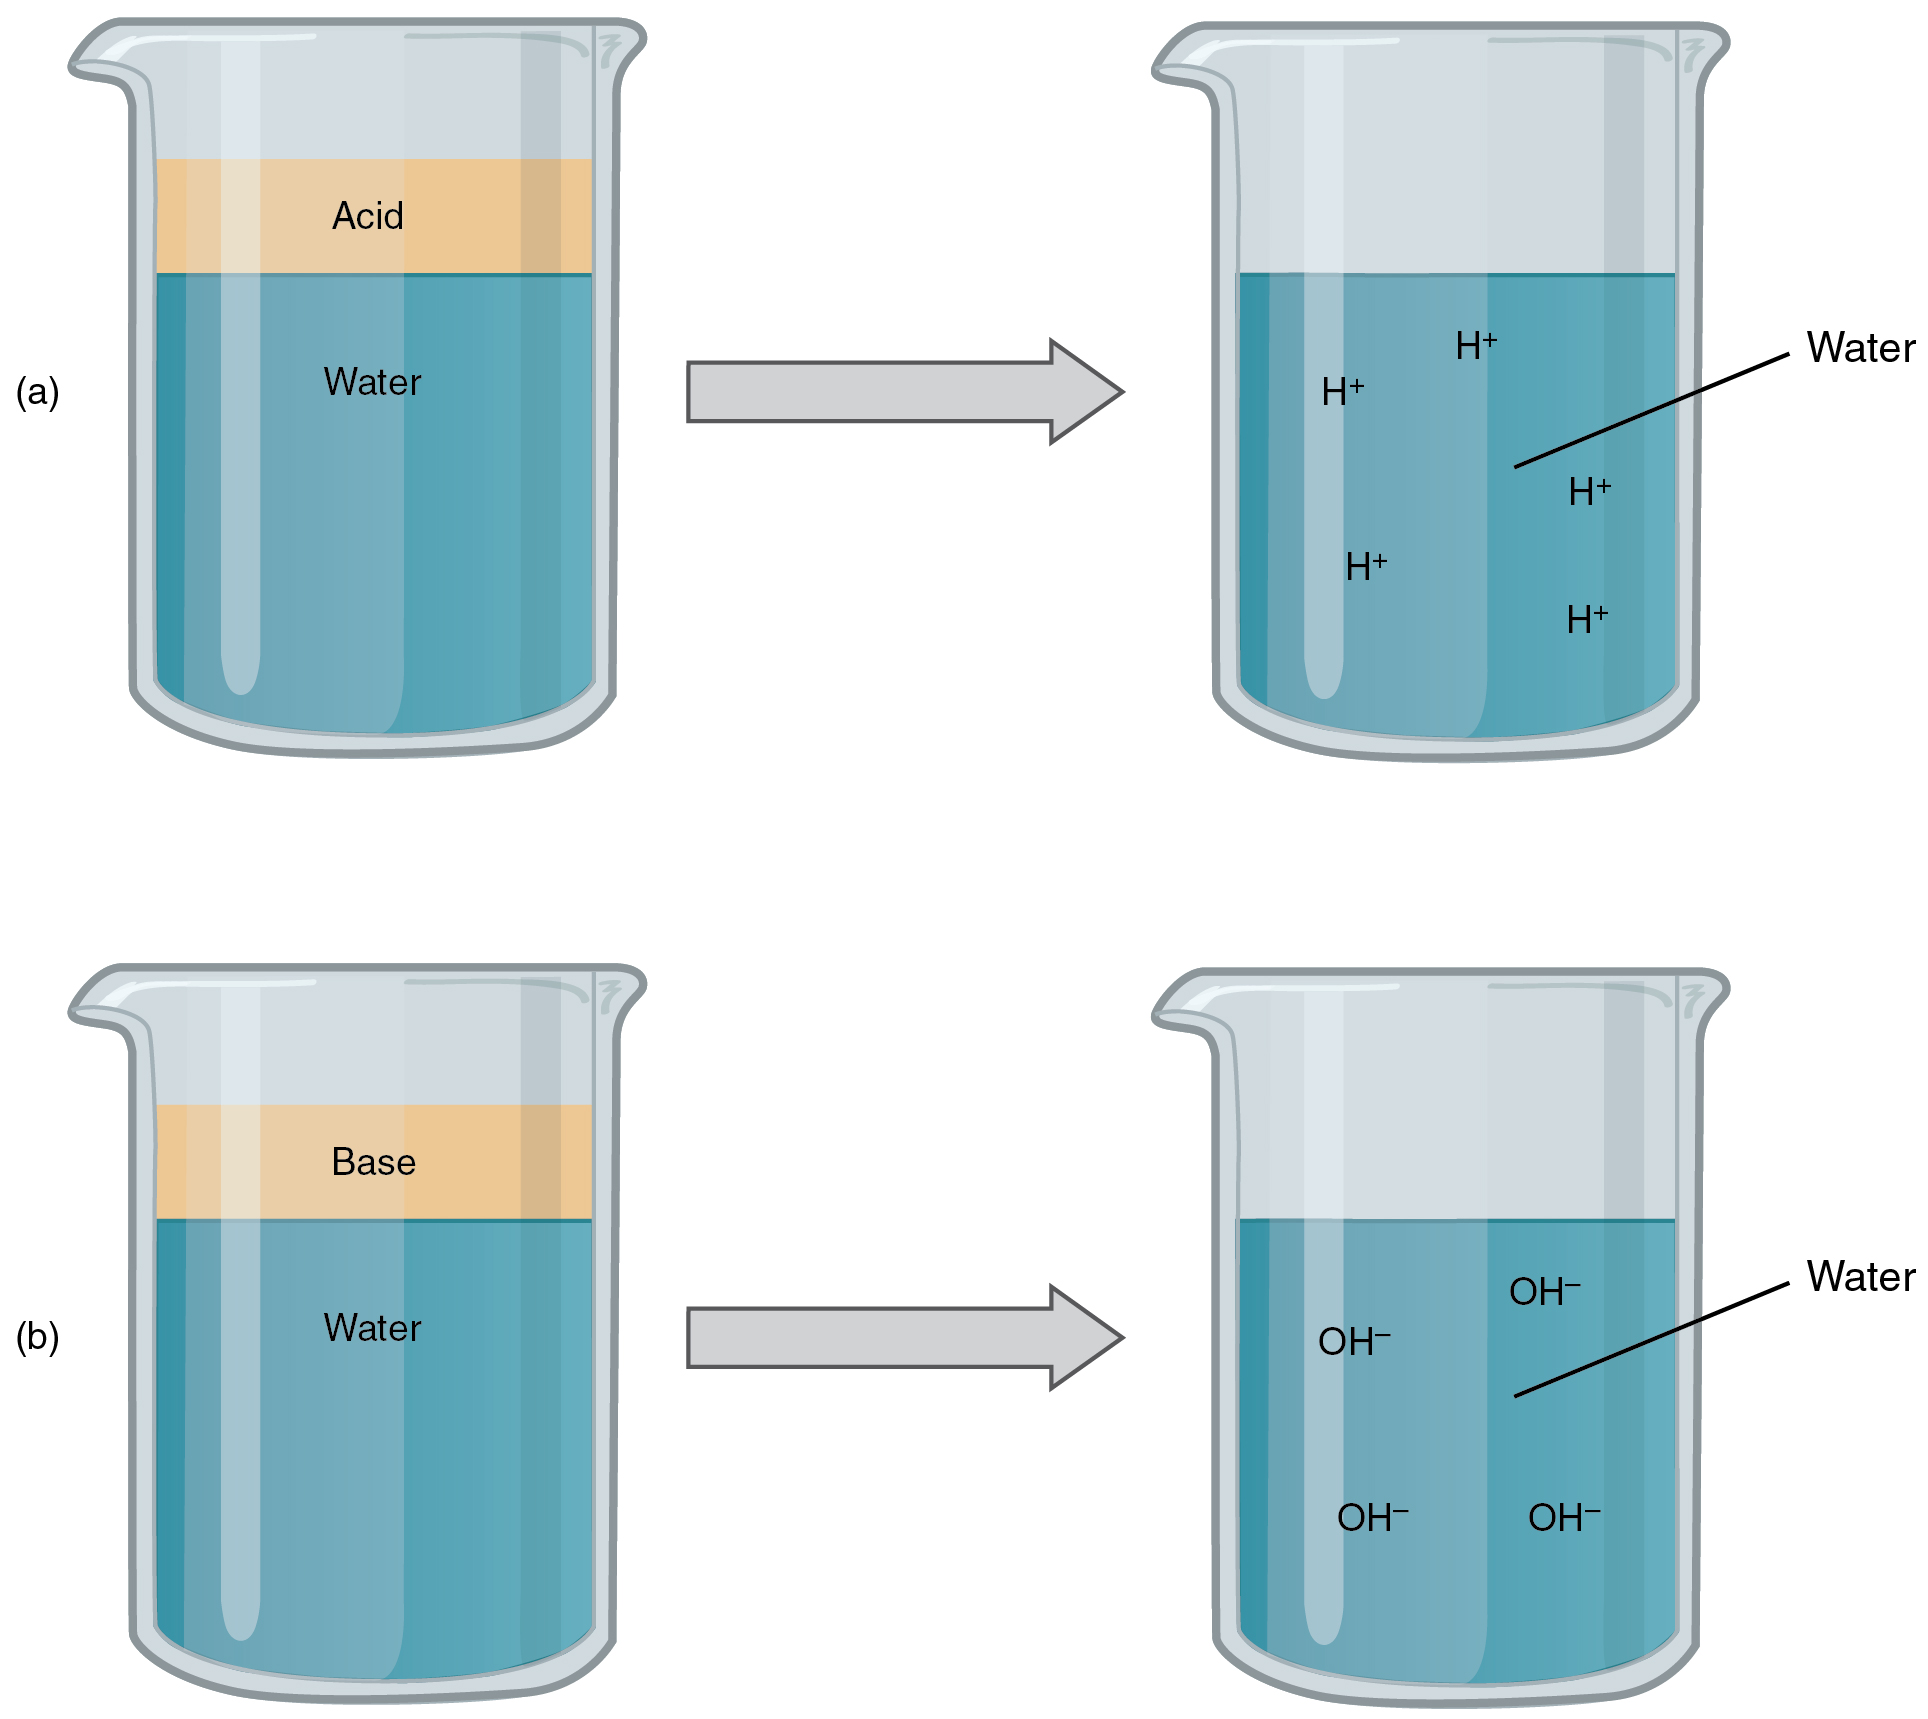 This figure shows four beakers containing different liquids.